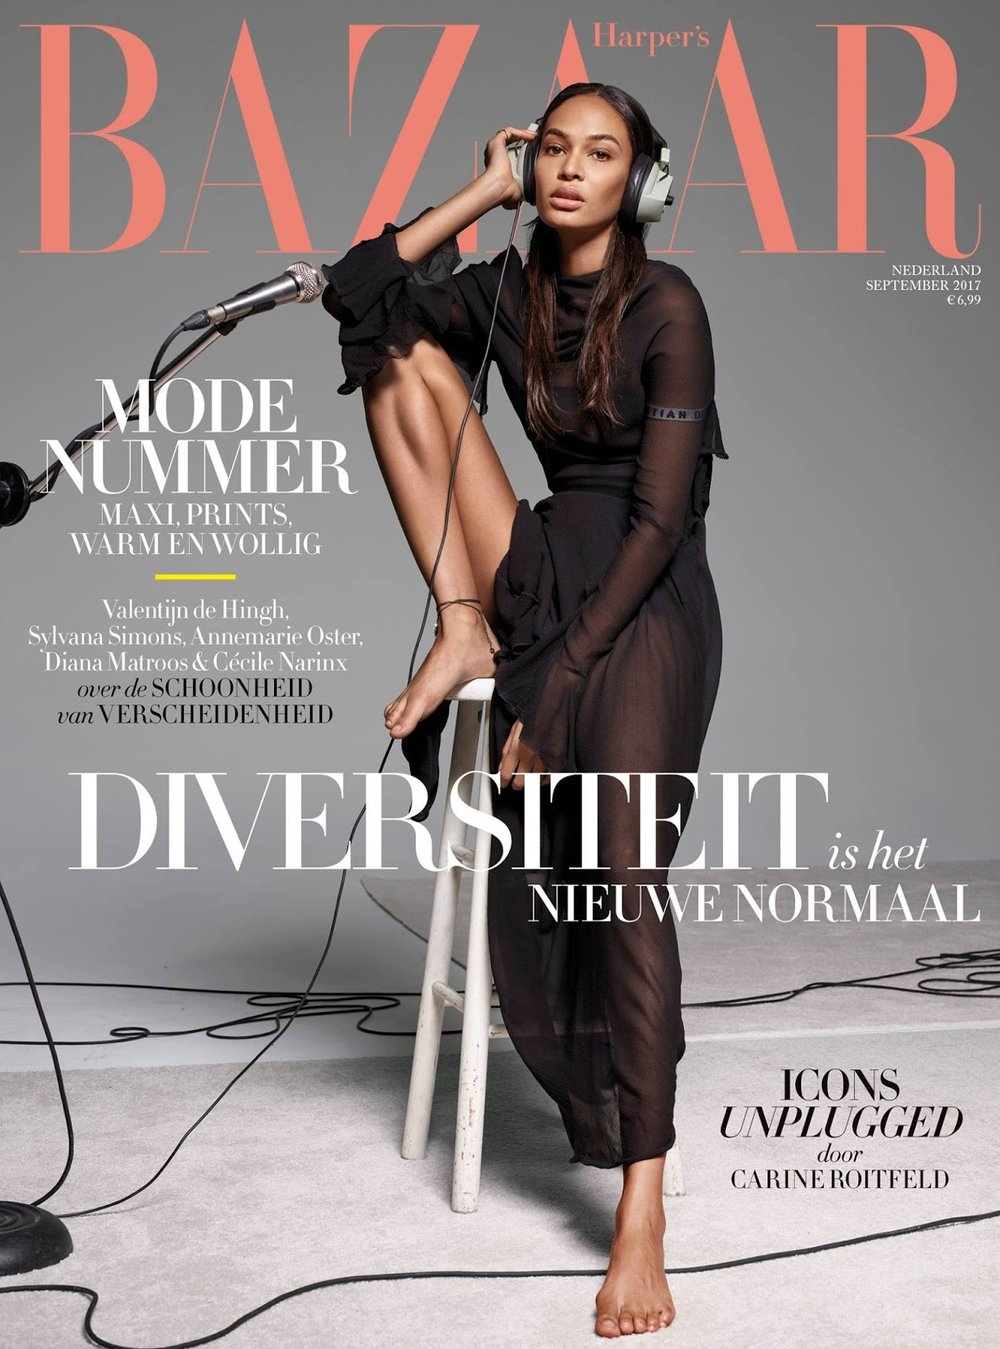 Harpers Bazaar September 2017 Netherlands.jpg